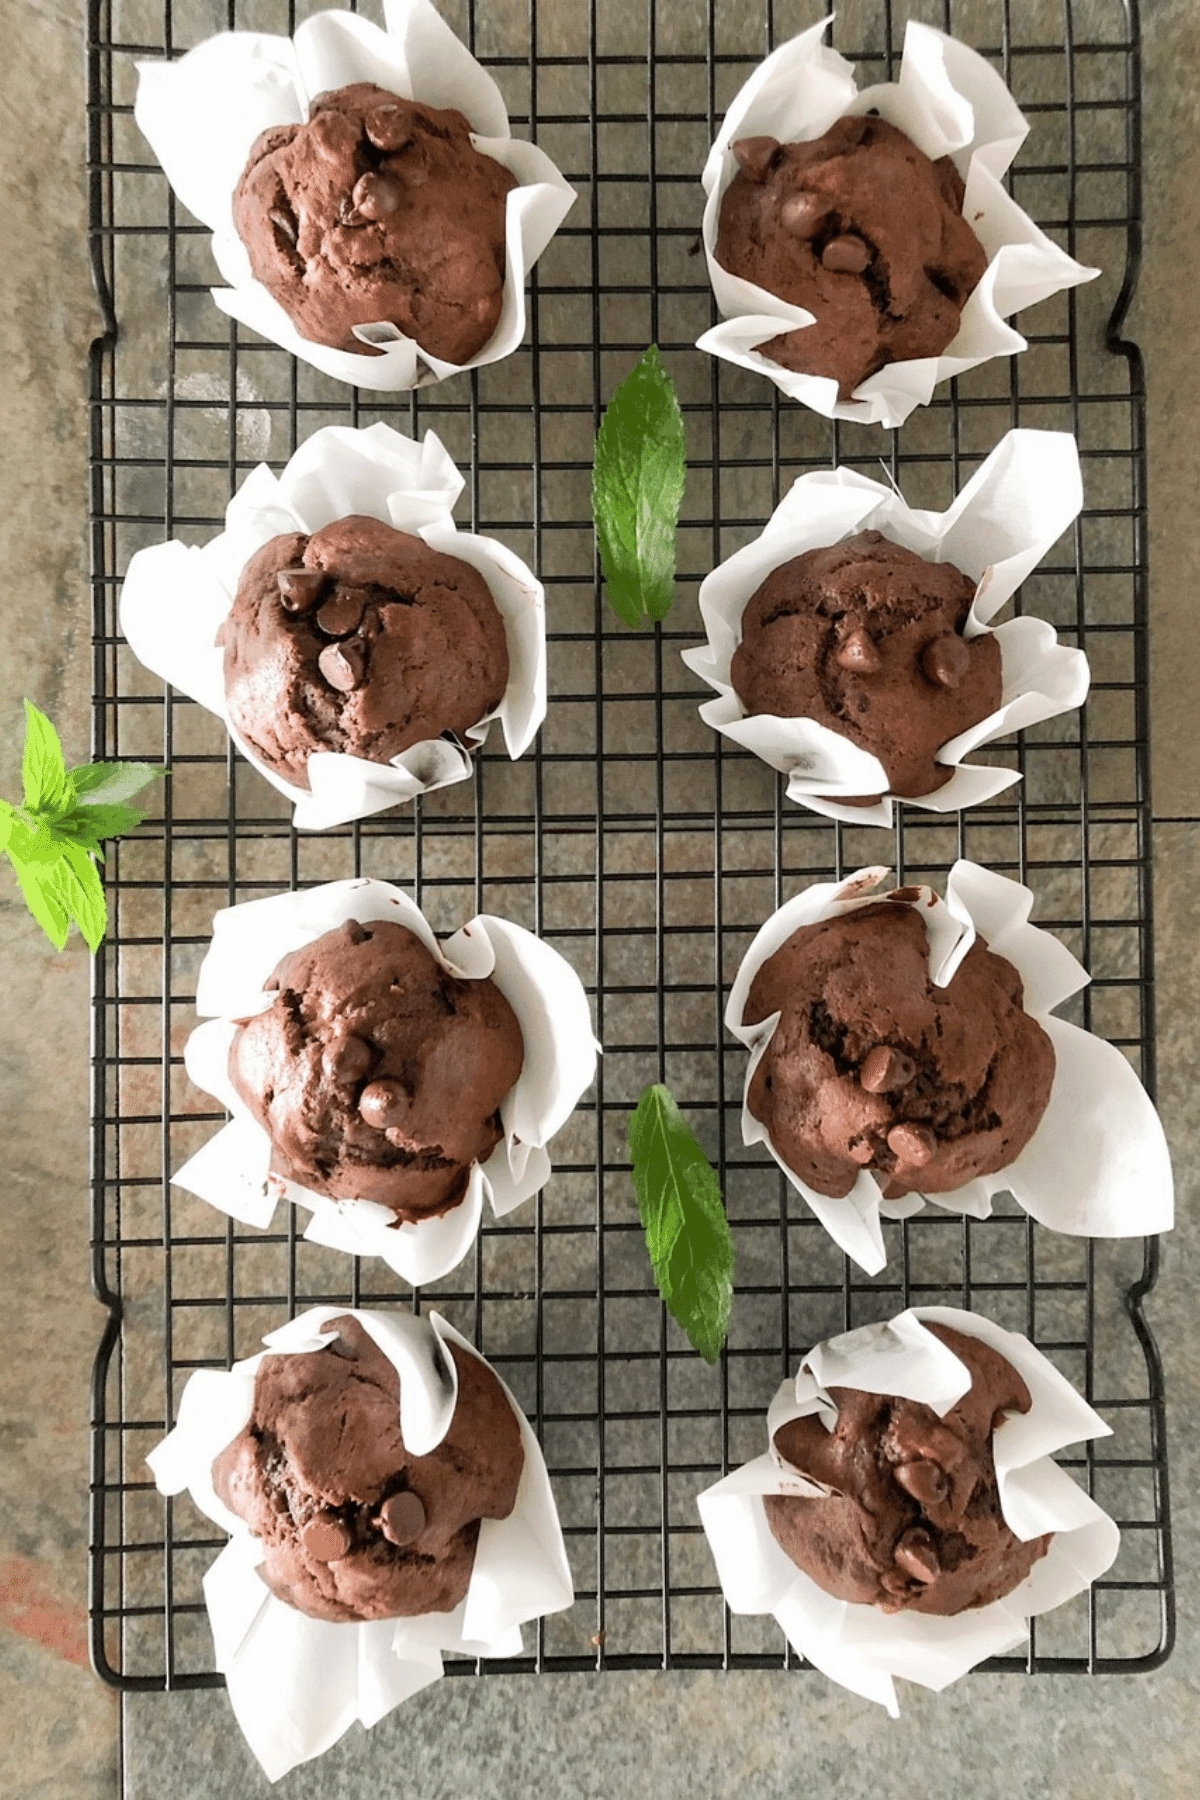 Cool muffins on cooling rack